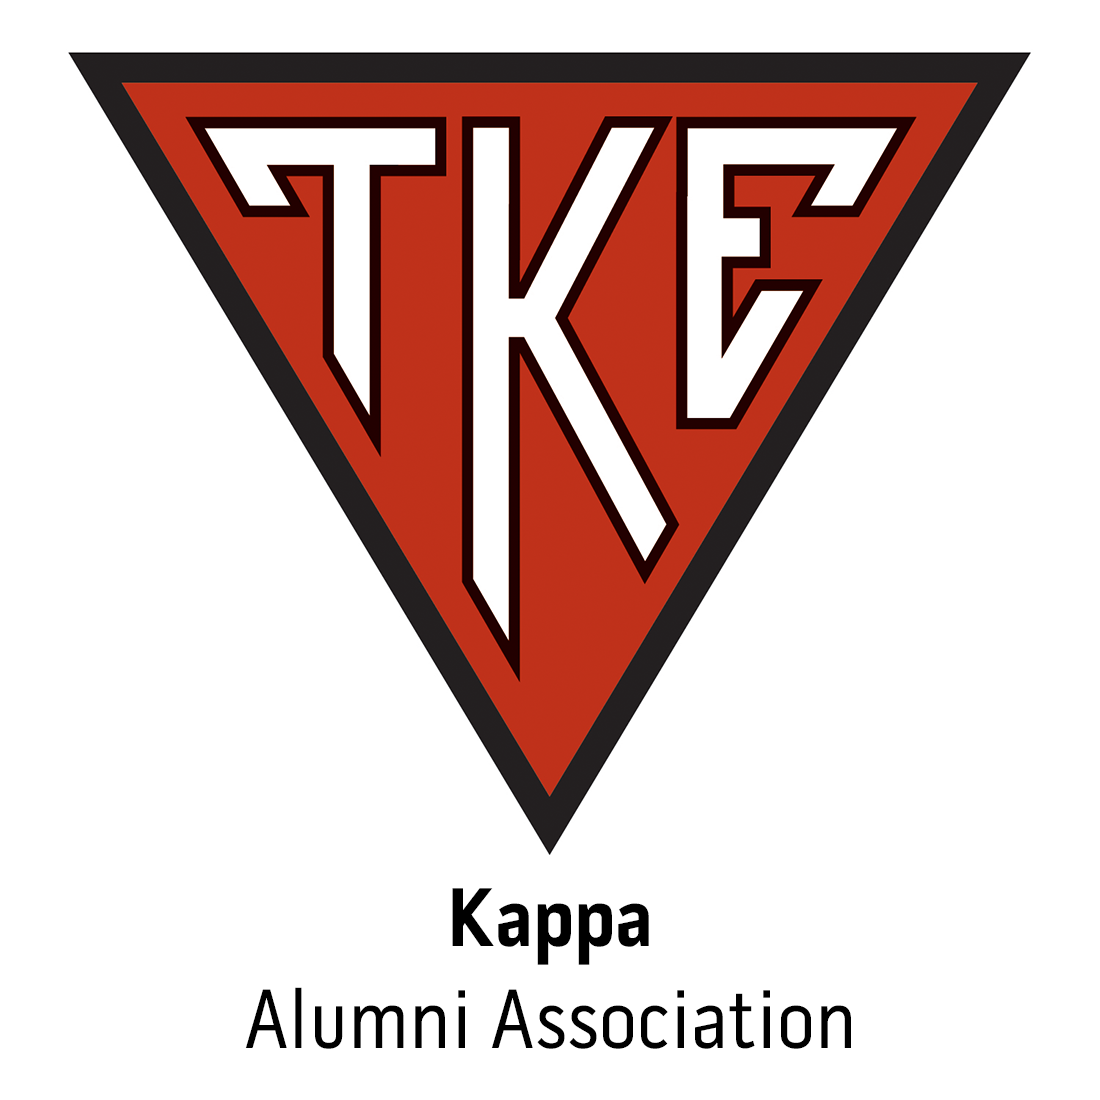 Kappa Alumni Association at Beloit College